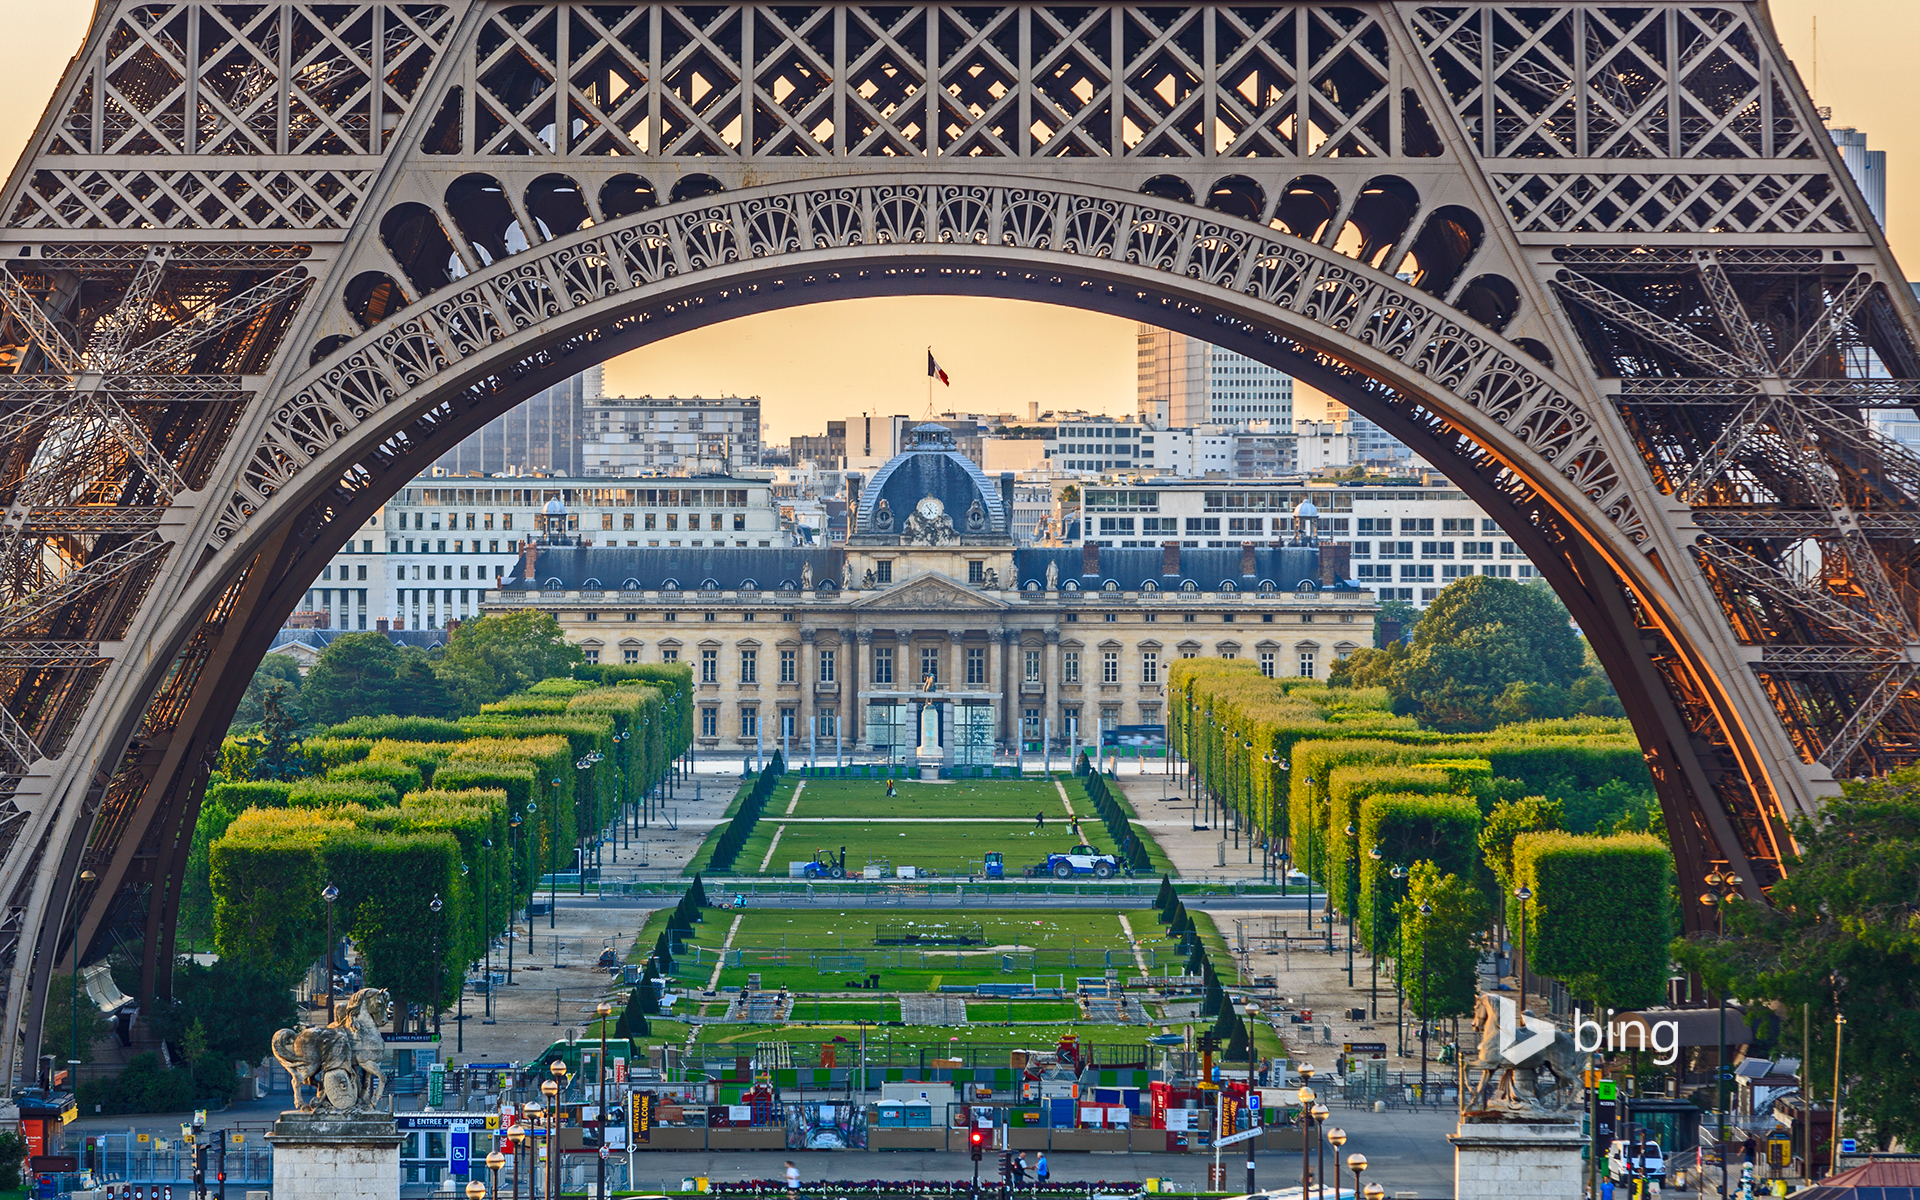 View of the Eiffel Tower from the Trocadero, Paris, France